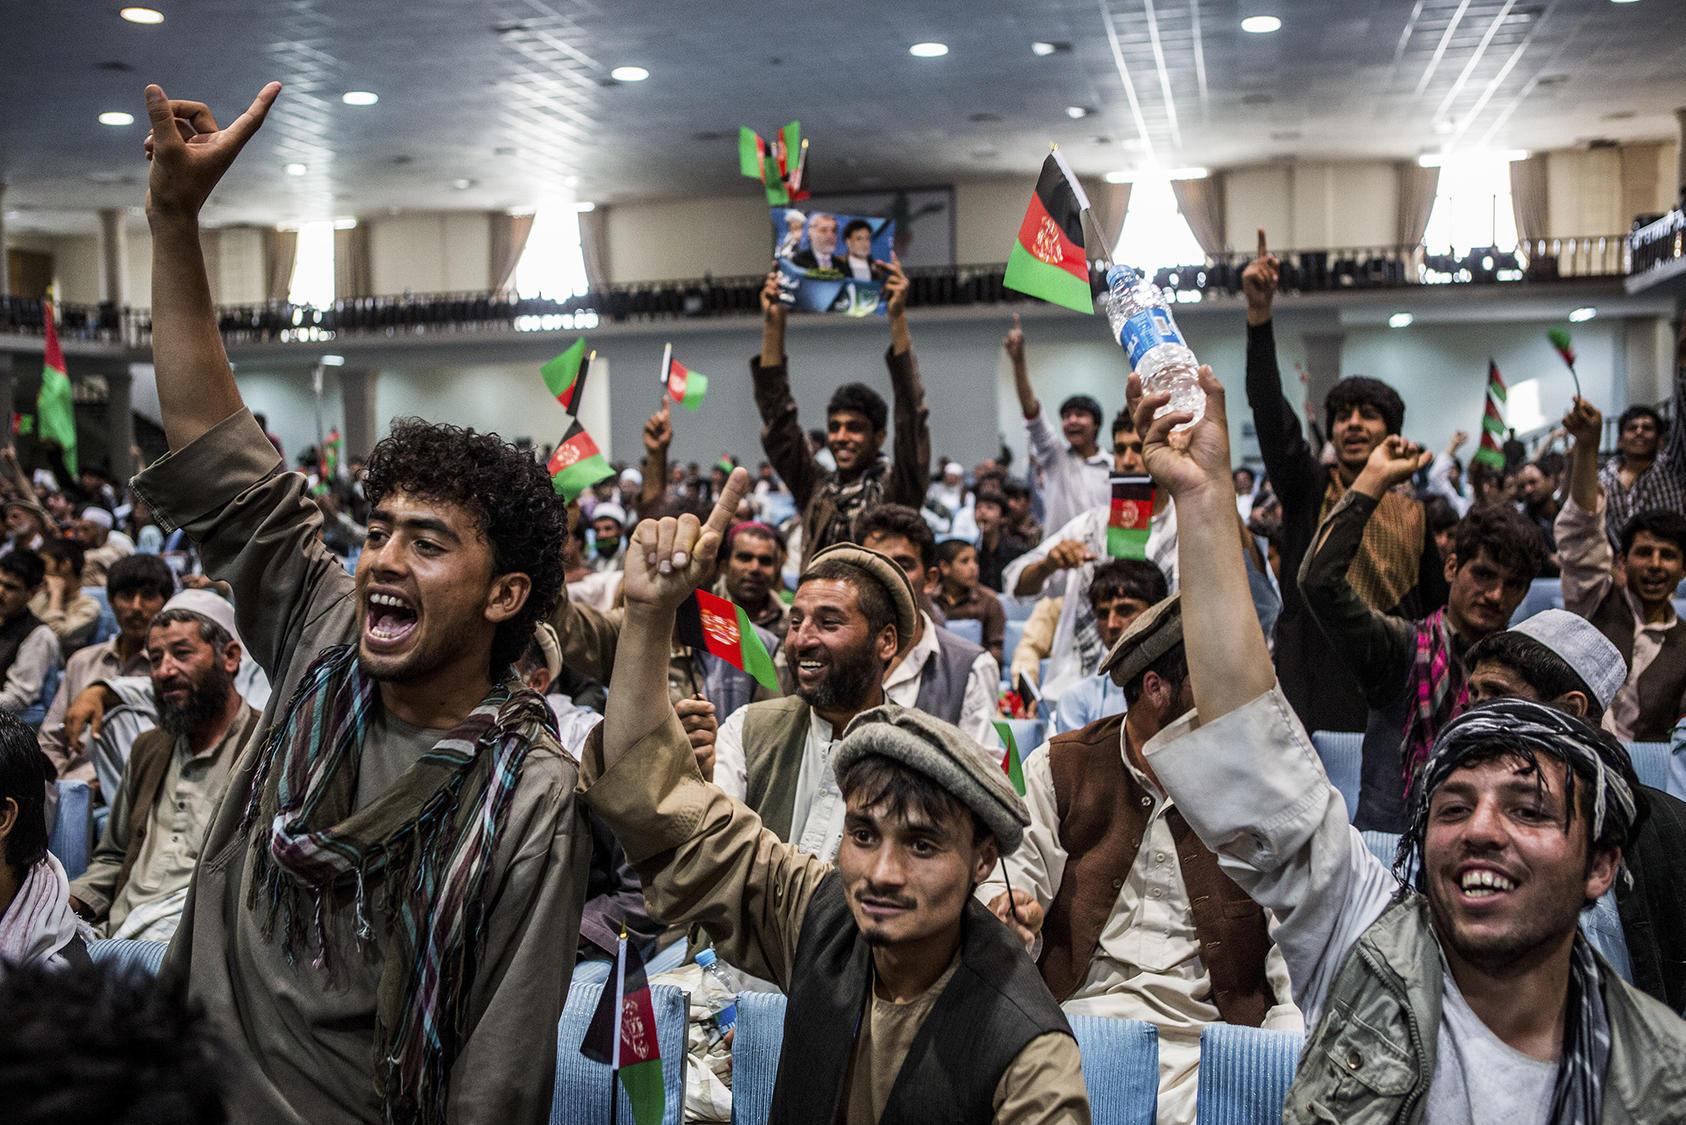 Afghans attend a campaign rally in Kabul, Afghanistan. (Bryan Denton/The New York Times)